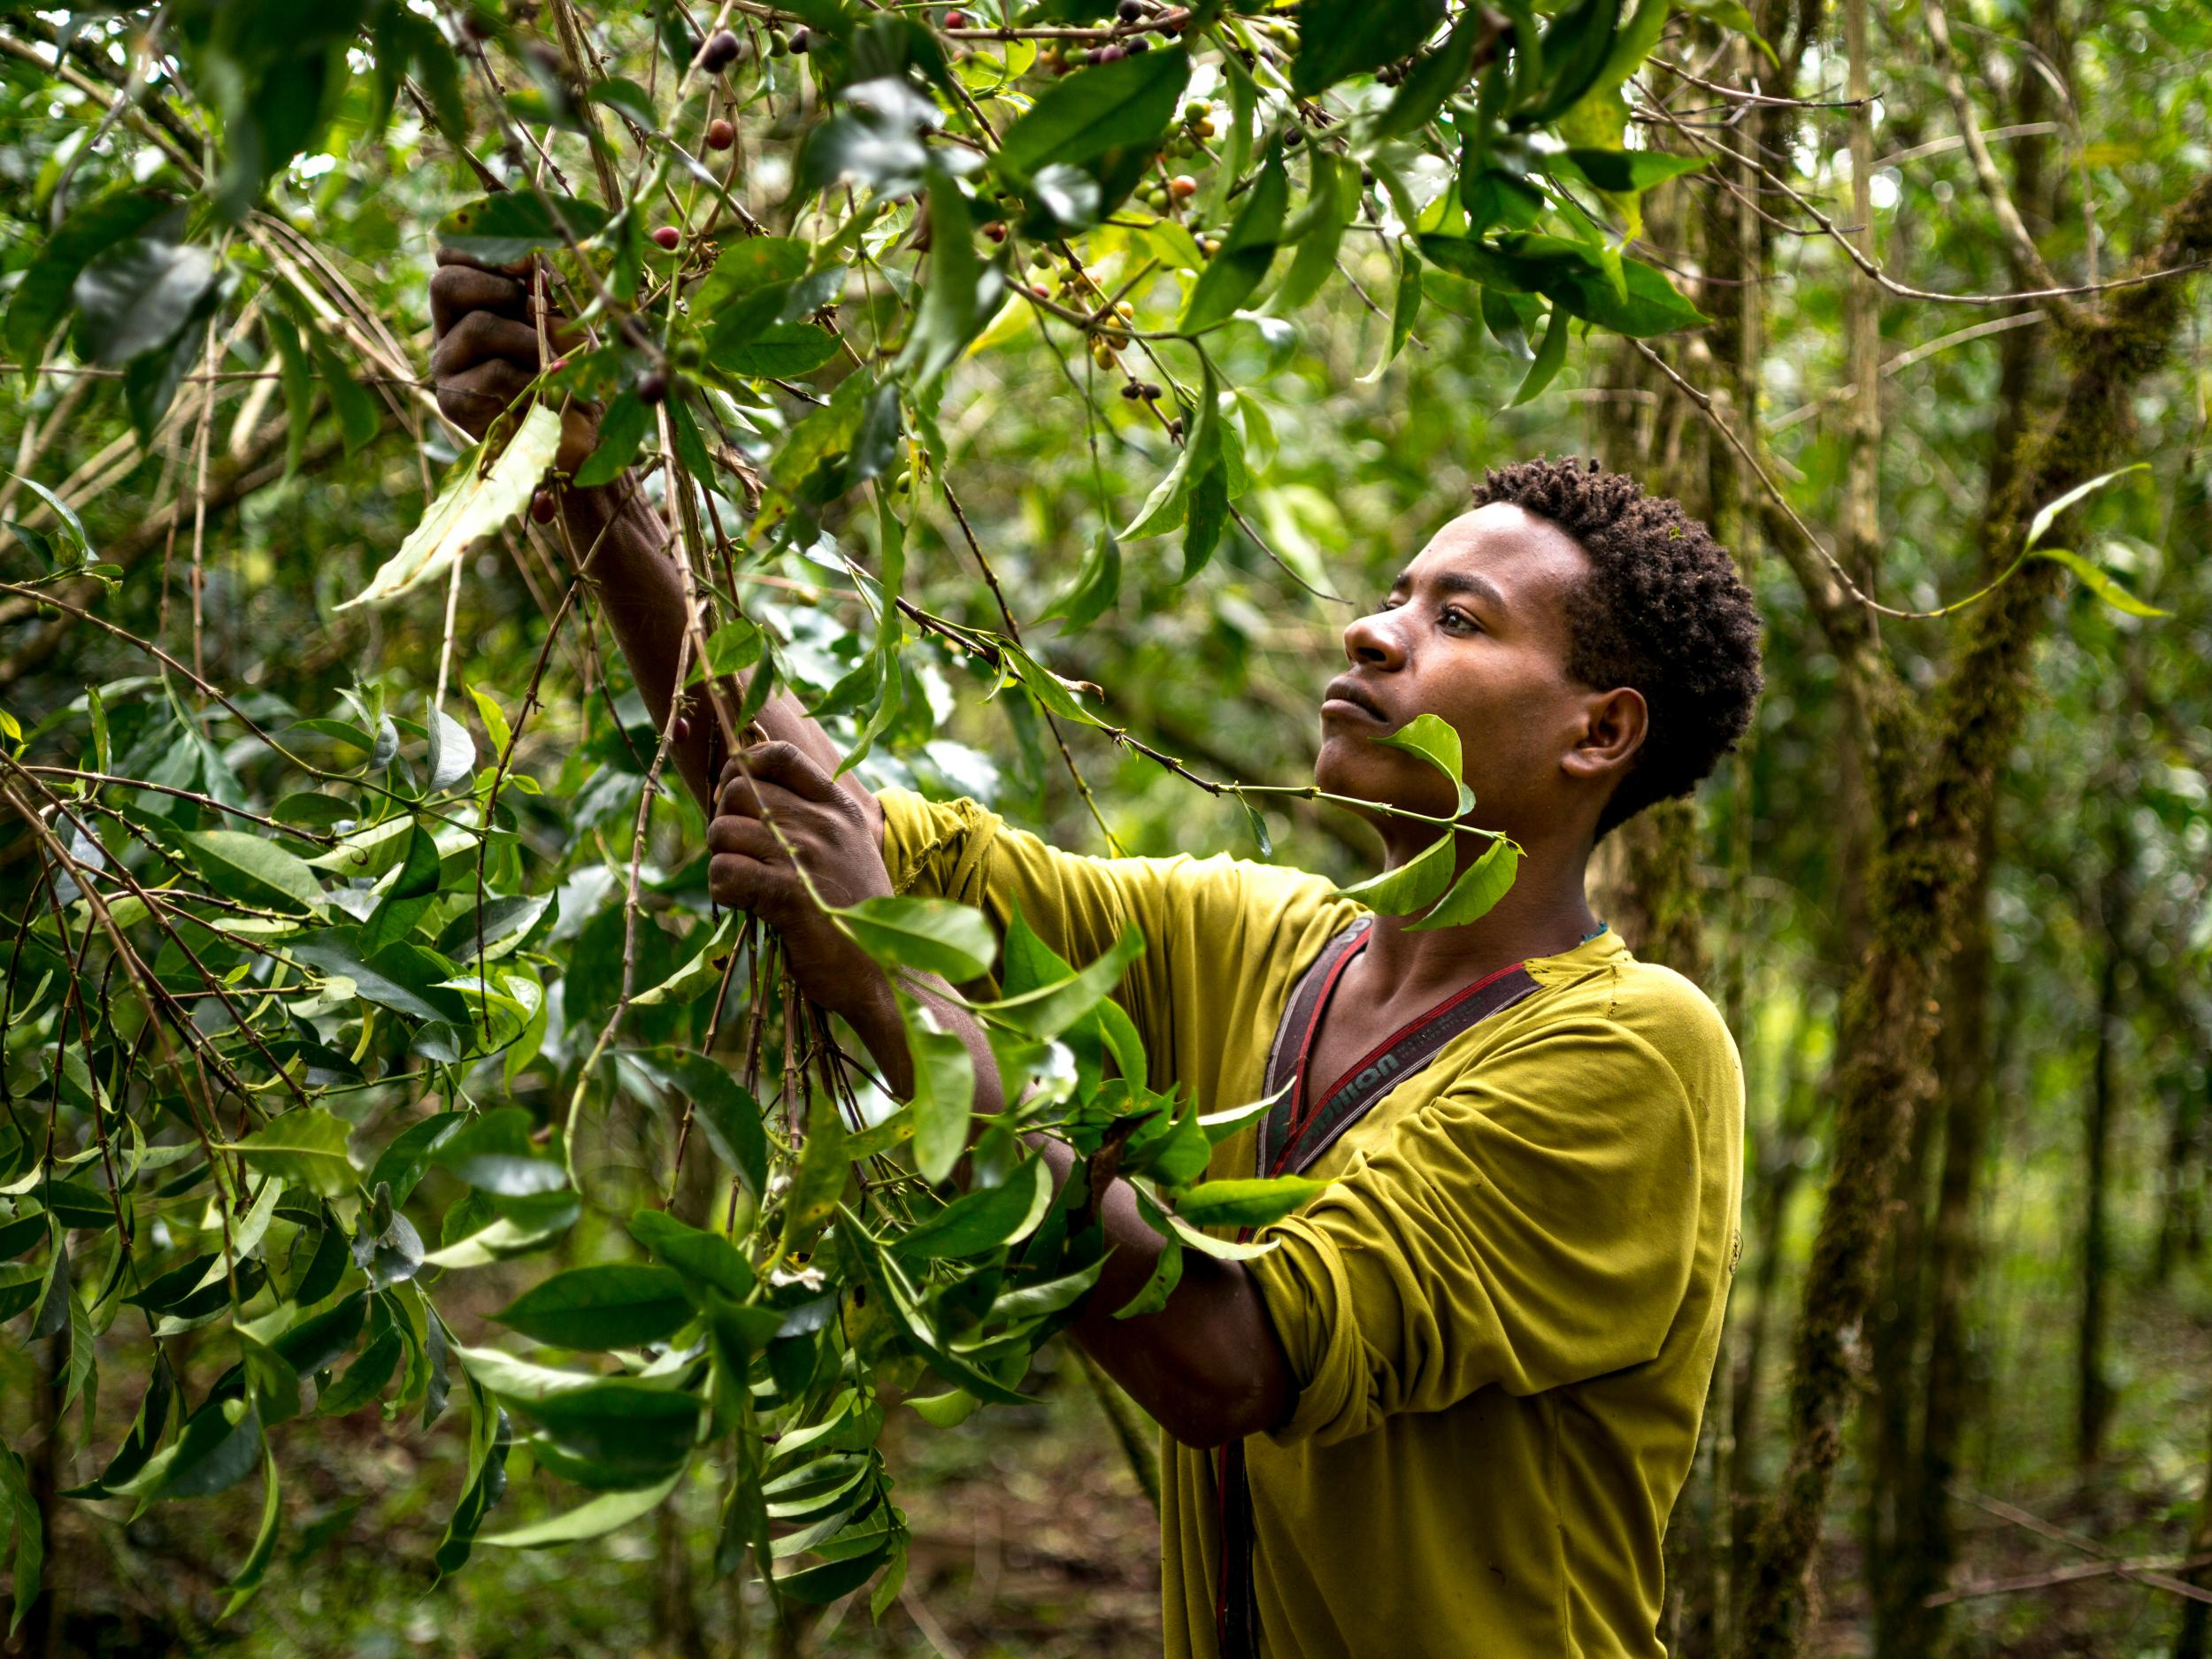 At least 60% of wild coffee species face extinction triggered by climate change and disease